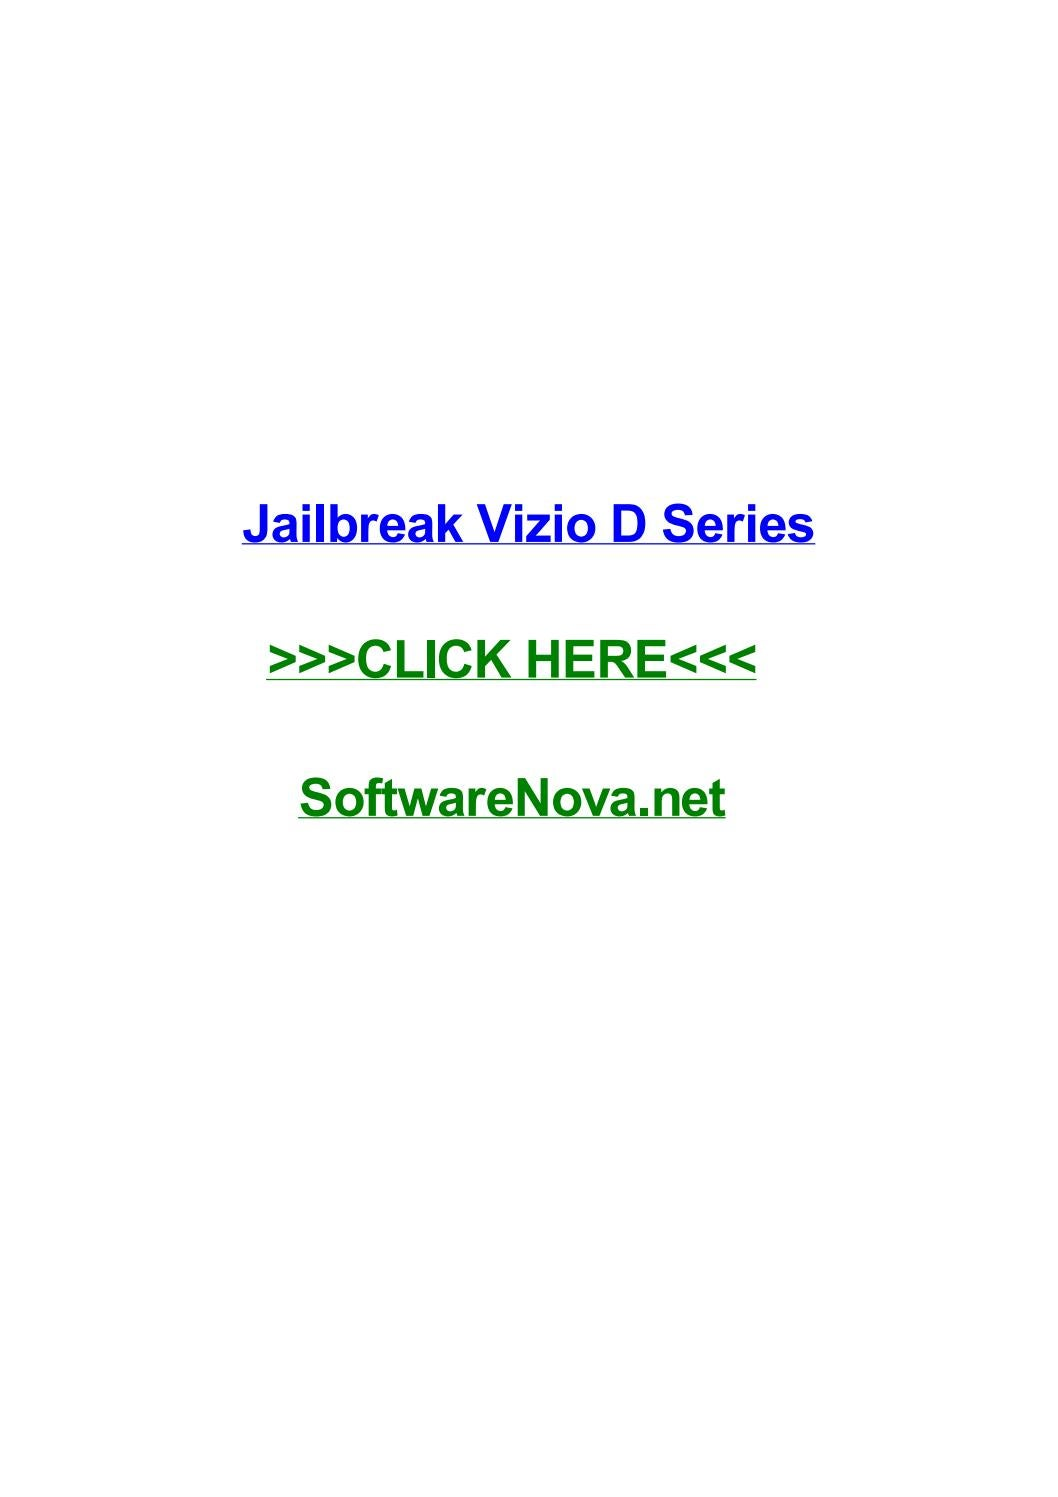 Jailbreak vizio d series by kellynnmex - issuu